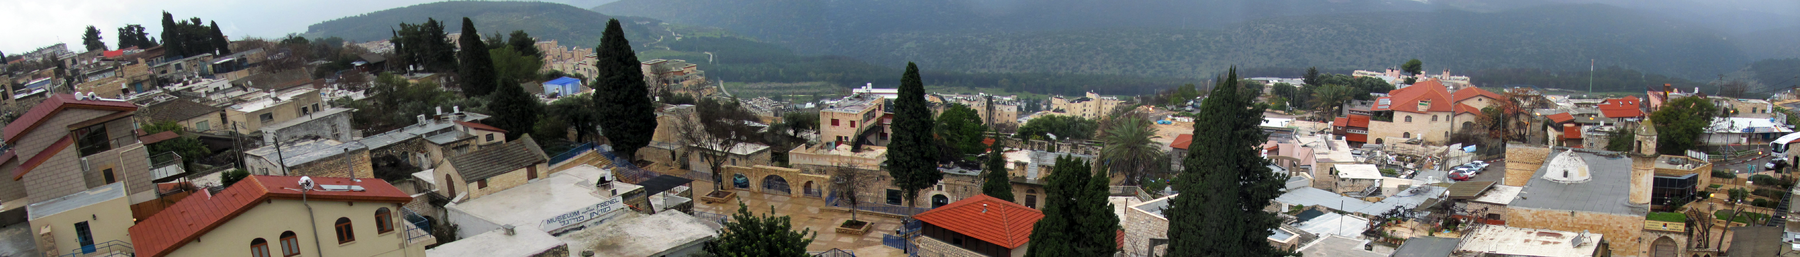 Safed Wikivoyage.png